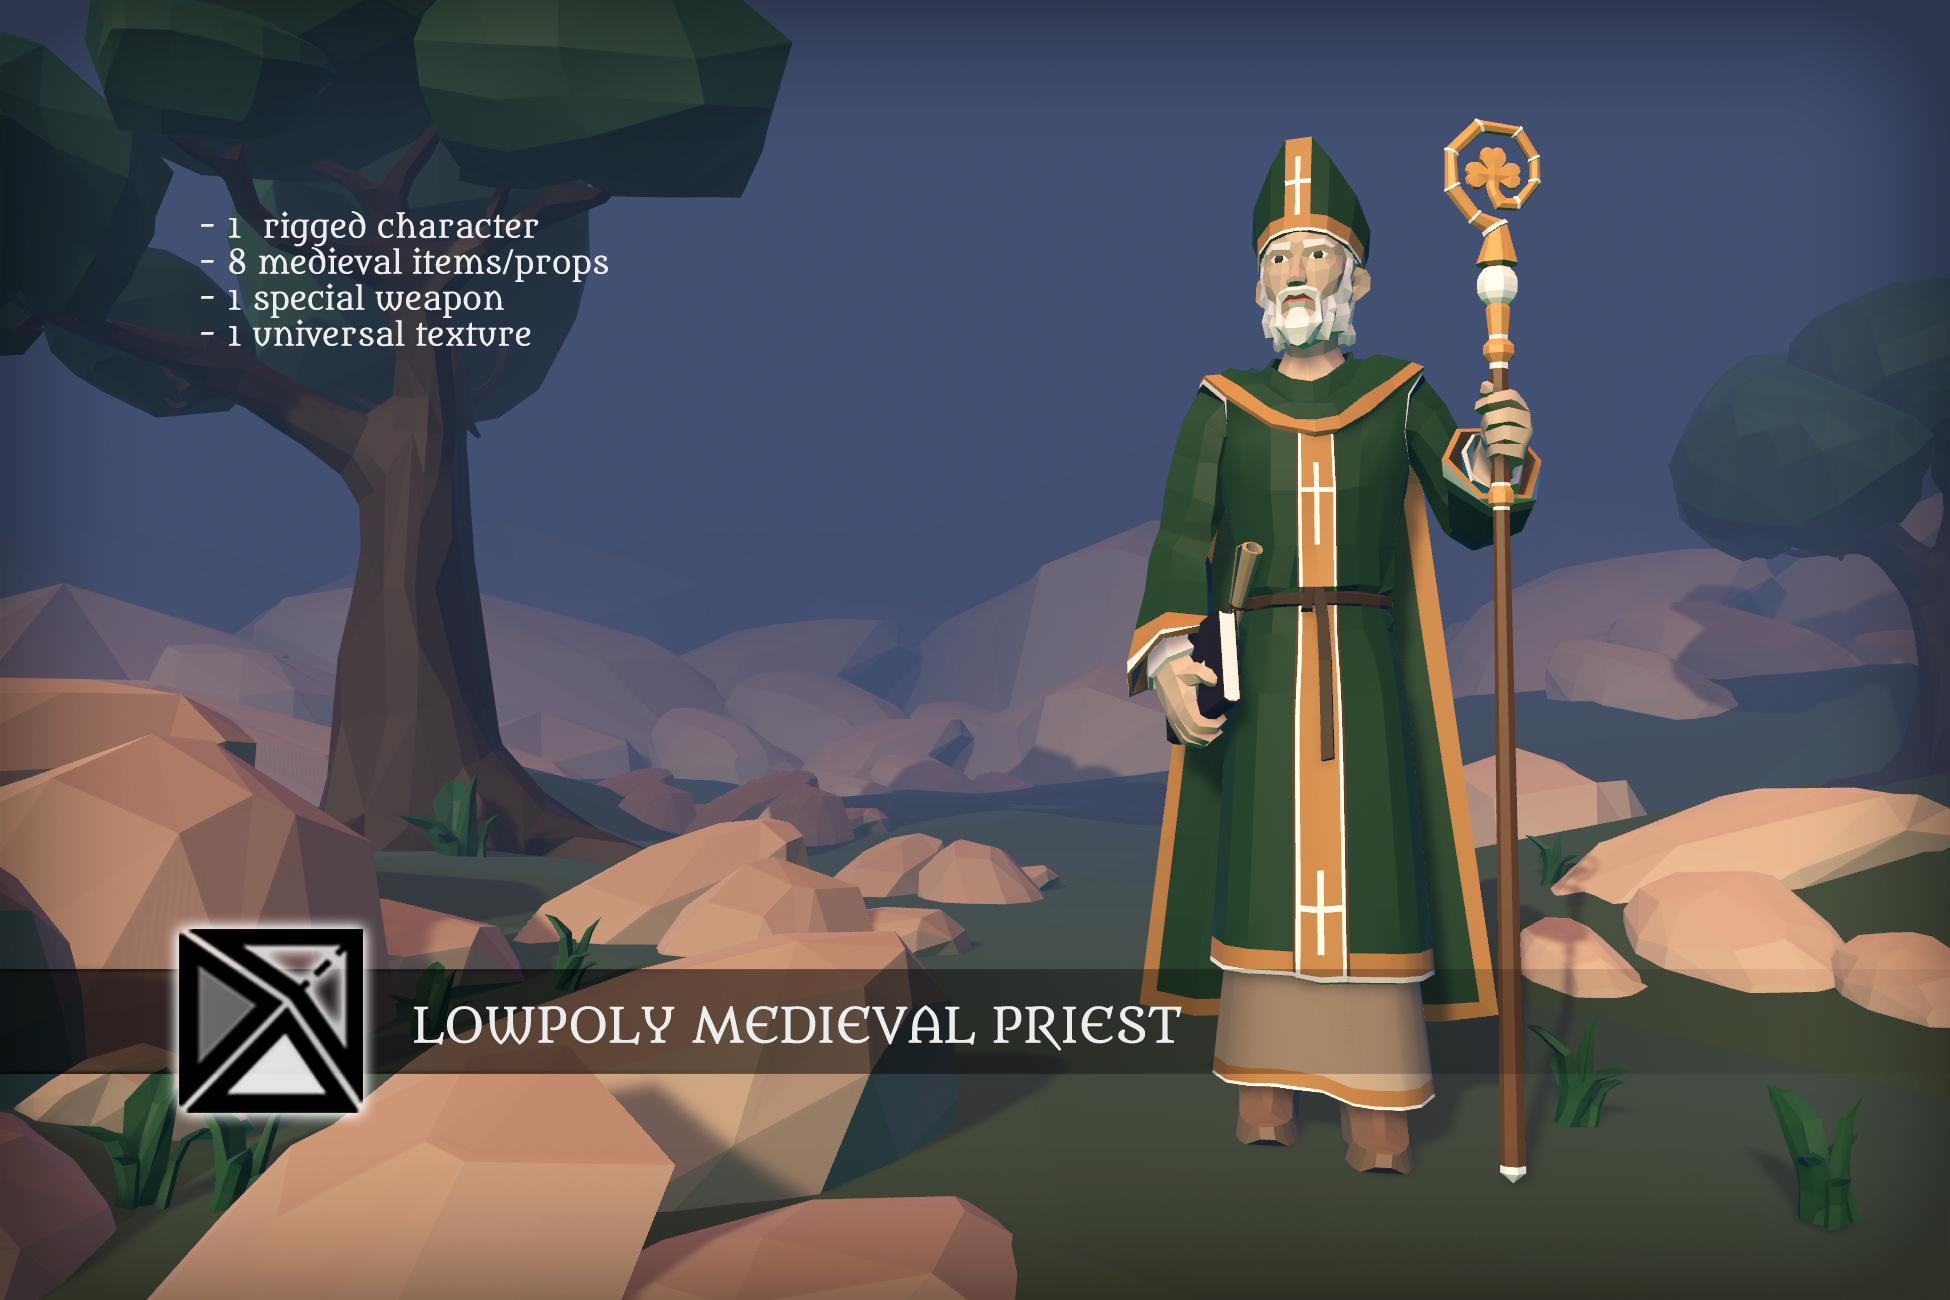 PT_Medieval_Lowpoly_Priest_Cover_Image.png